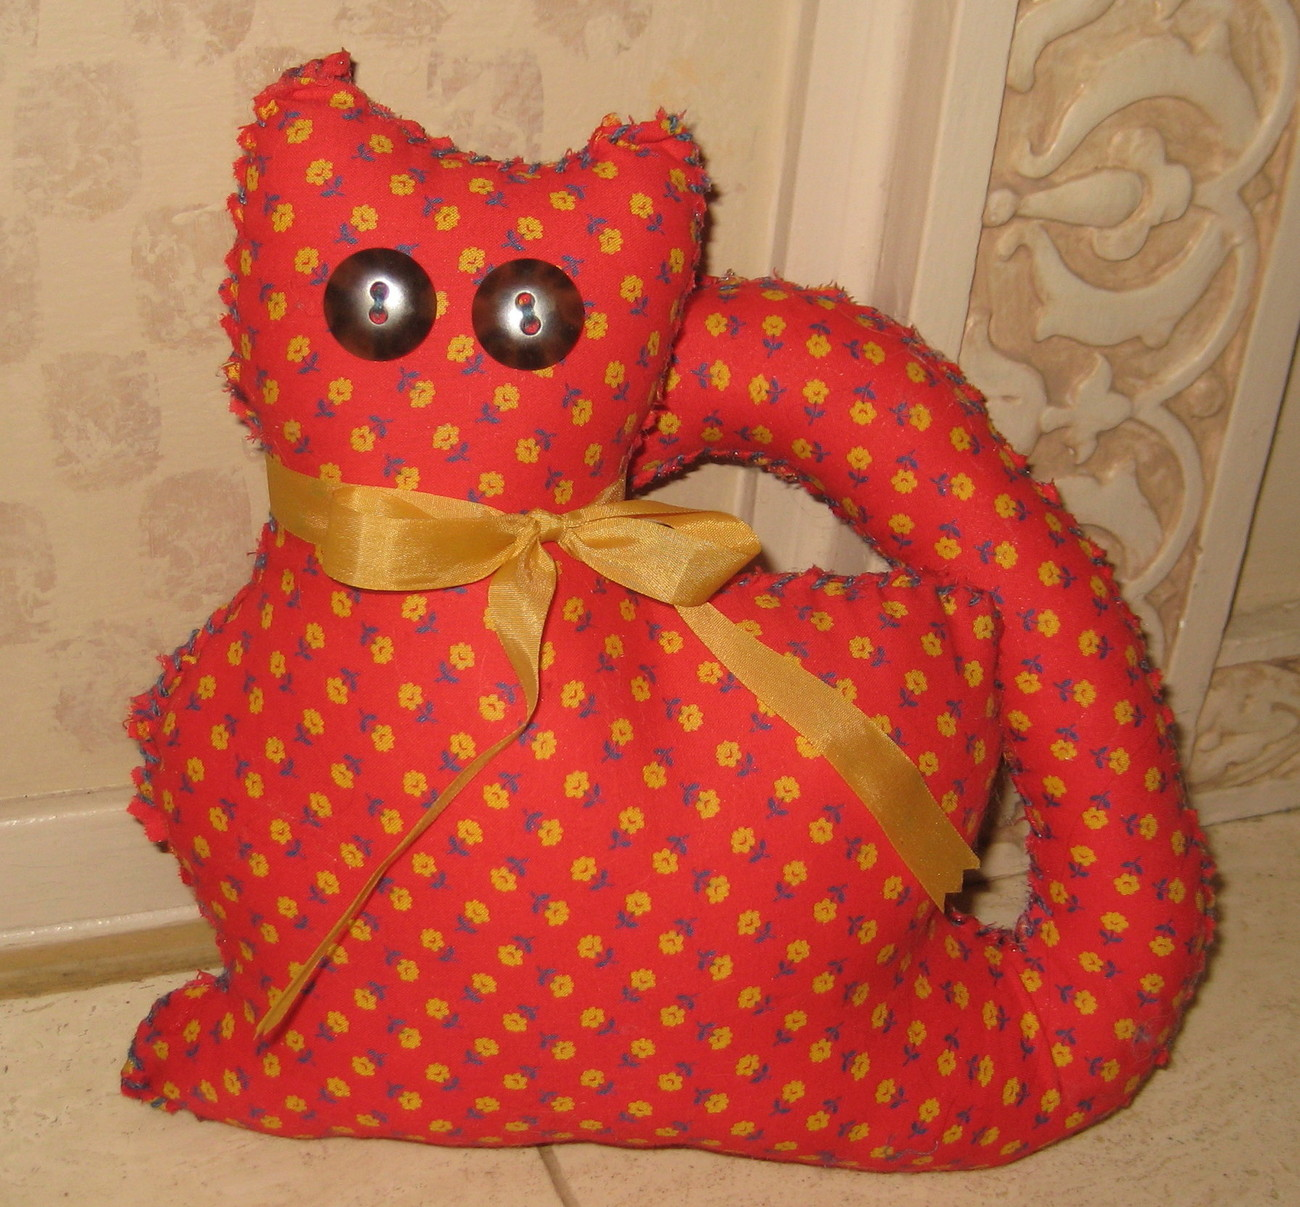 RED CALICO KITTY CAT PILLOW, HANDSTITCHED WITH A YELLOW RIBBON - OOAK - NEW